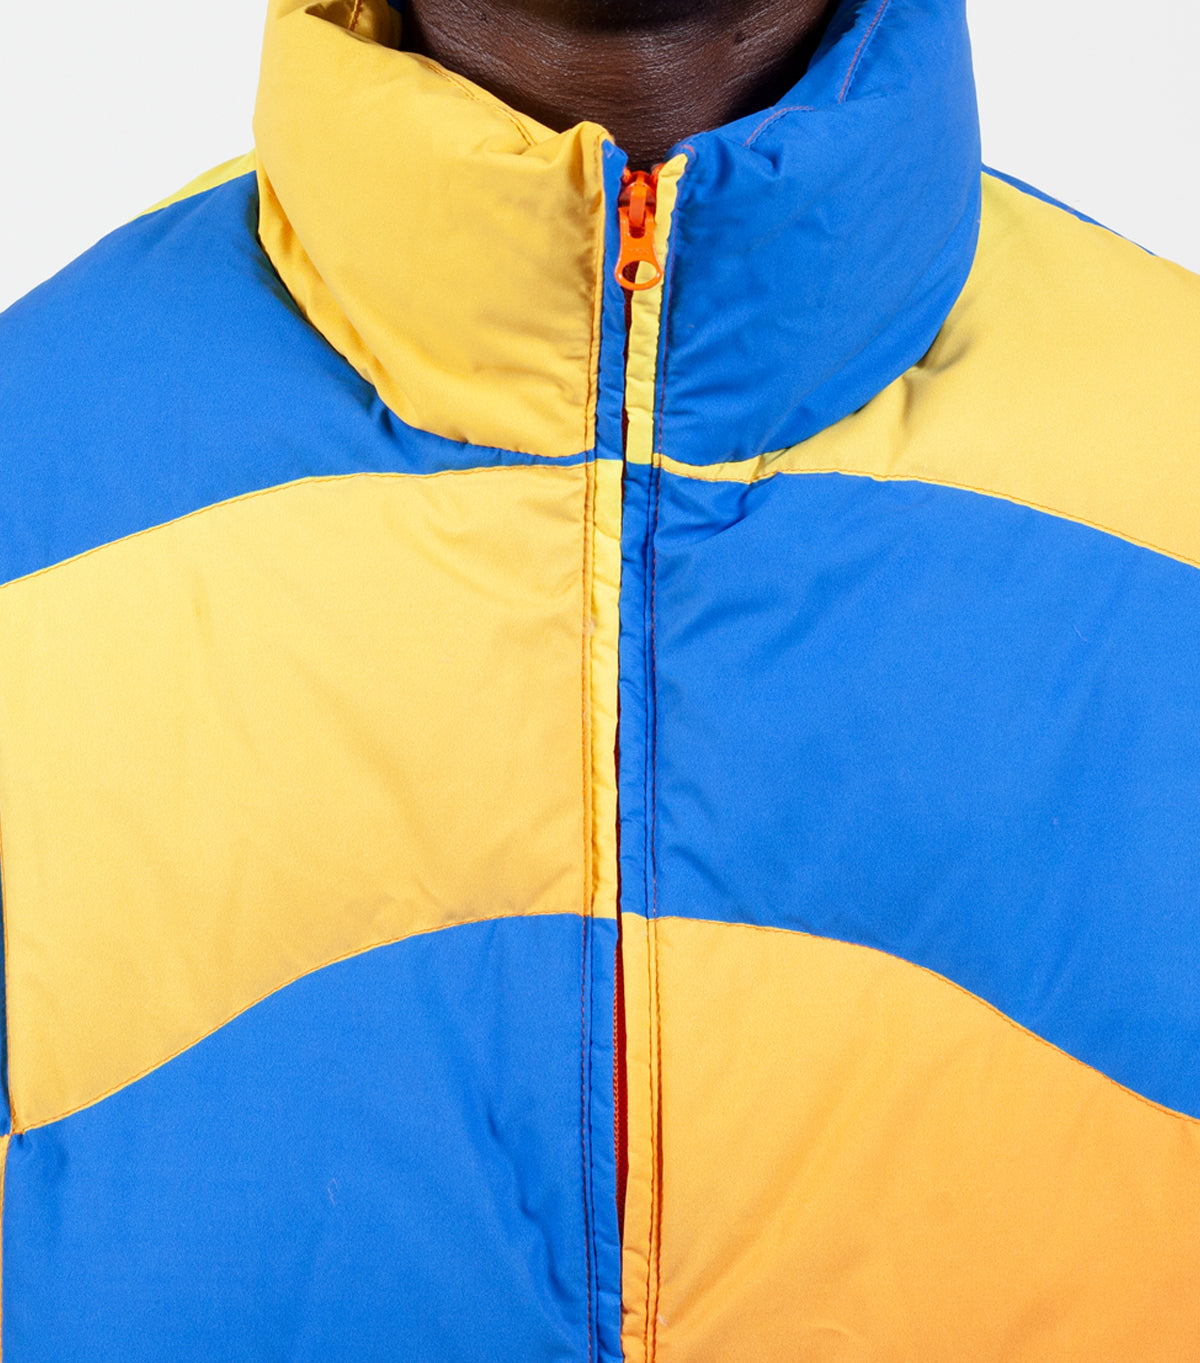 ERL | ERL SKI JACKET BLUE | SOMEWHERE®